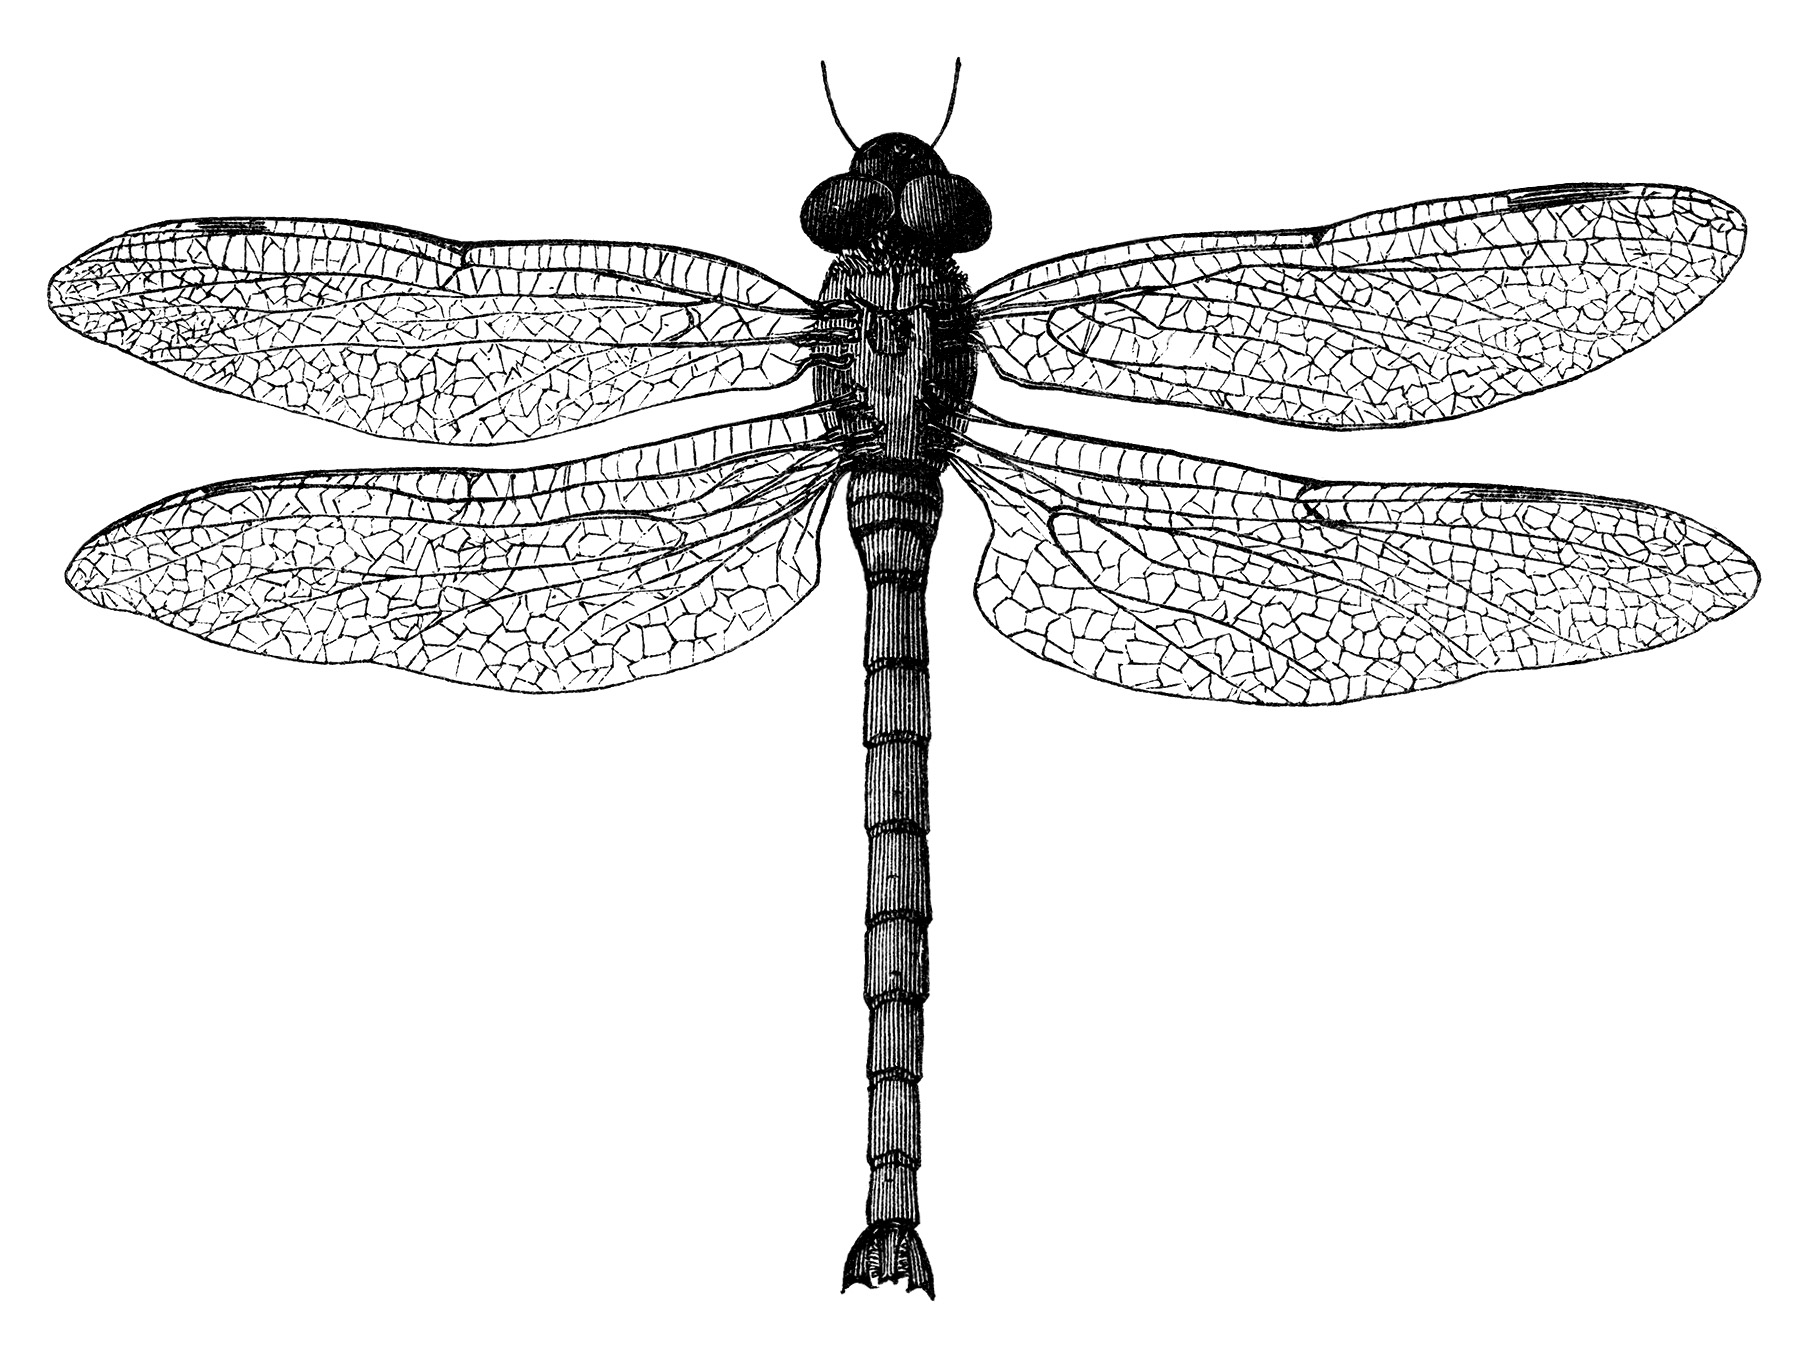 black and white clip art, vintage dragonfly clipart, digital stamp dragonfly, old dragonfly illustration, insect graphics